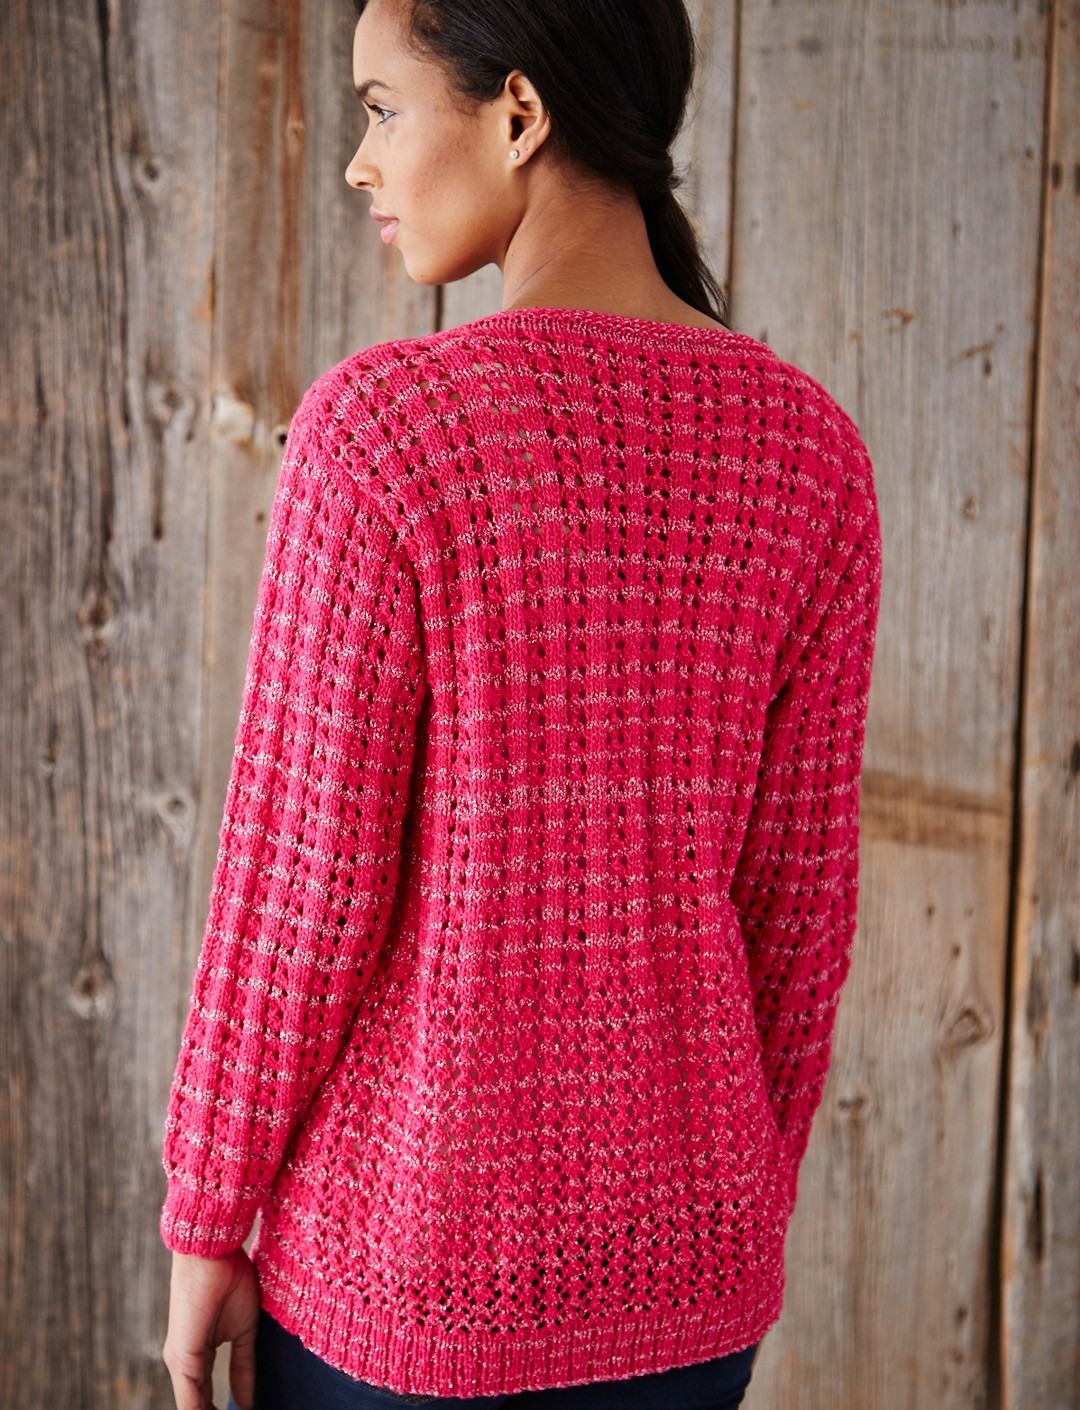 Patons Mixed Stitch Cardigan, Knit Pattern | Yarnspirations